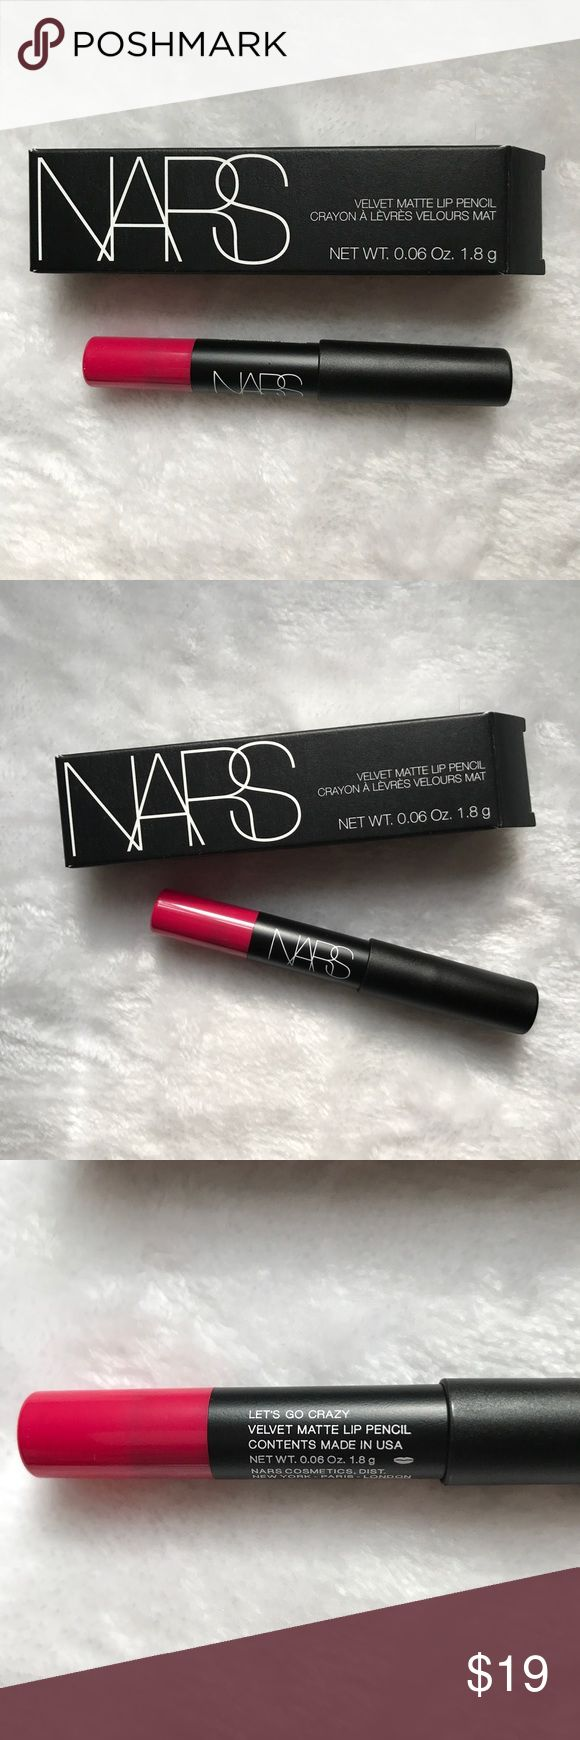 NARS Velvet Matte Lip Pencil 5855 Lets Go Crazy NARS Velvet Matte Lip Pencil in Let's Go Crazy 5855 New in Box Travel Size. 0.06oz. / 1.8g. Pink color family. Please let me know if you have any questions. 30% additional discounts when bundling. Reasonable offers may be considered. No trades. NARS Makeup Lipstick